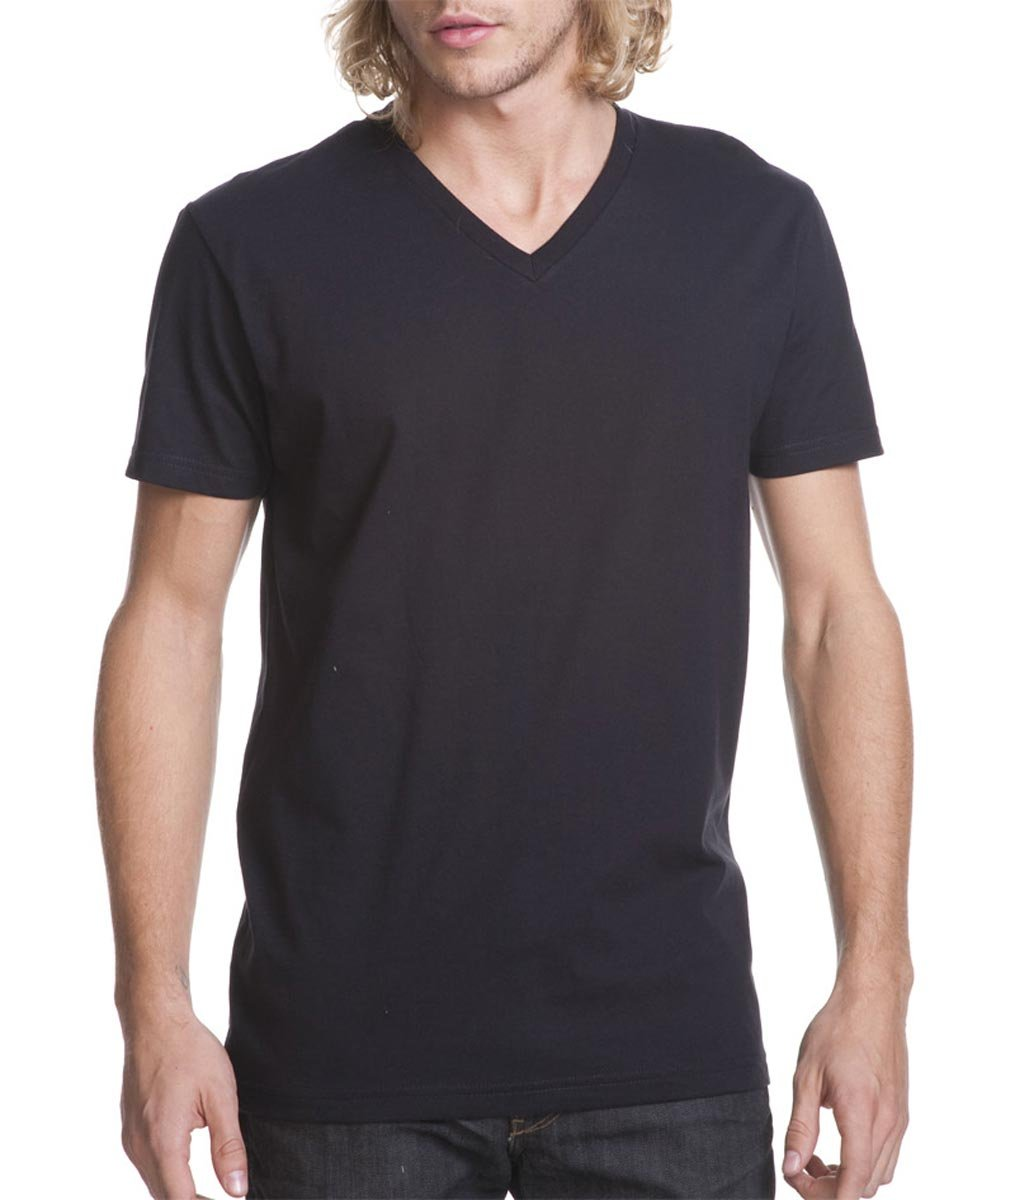 Black M Next Level Premium Fitted Short-Sleeve V